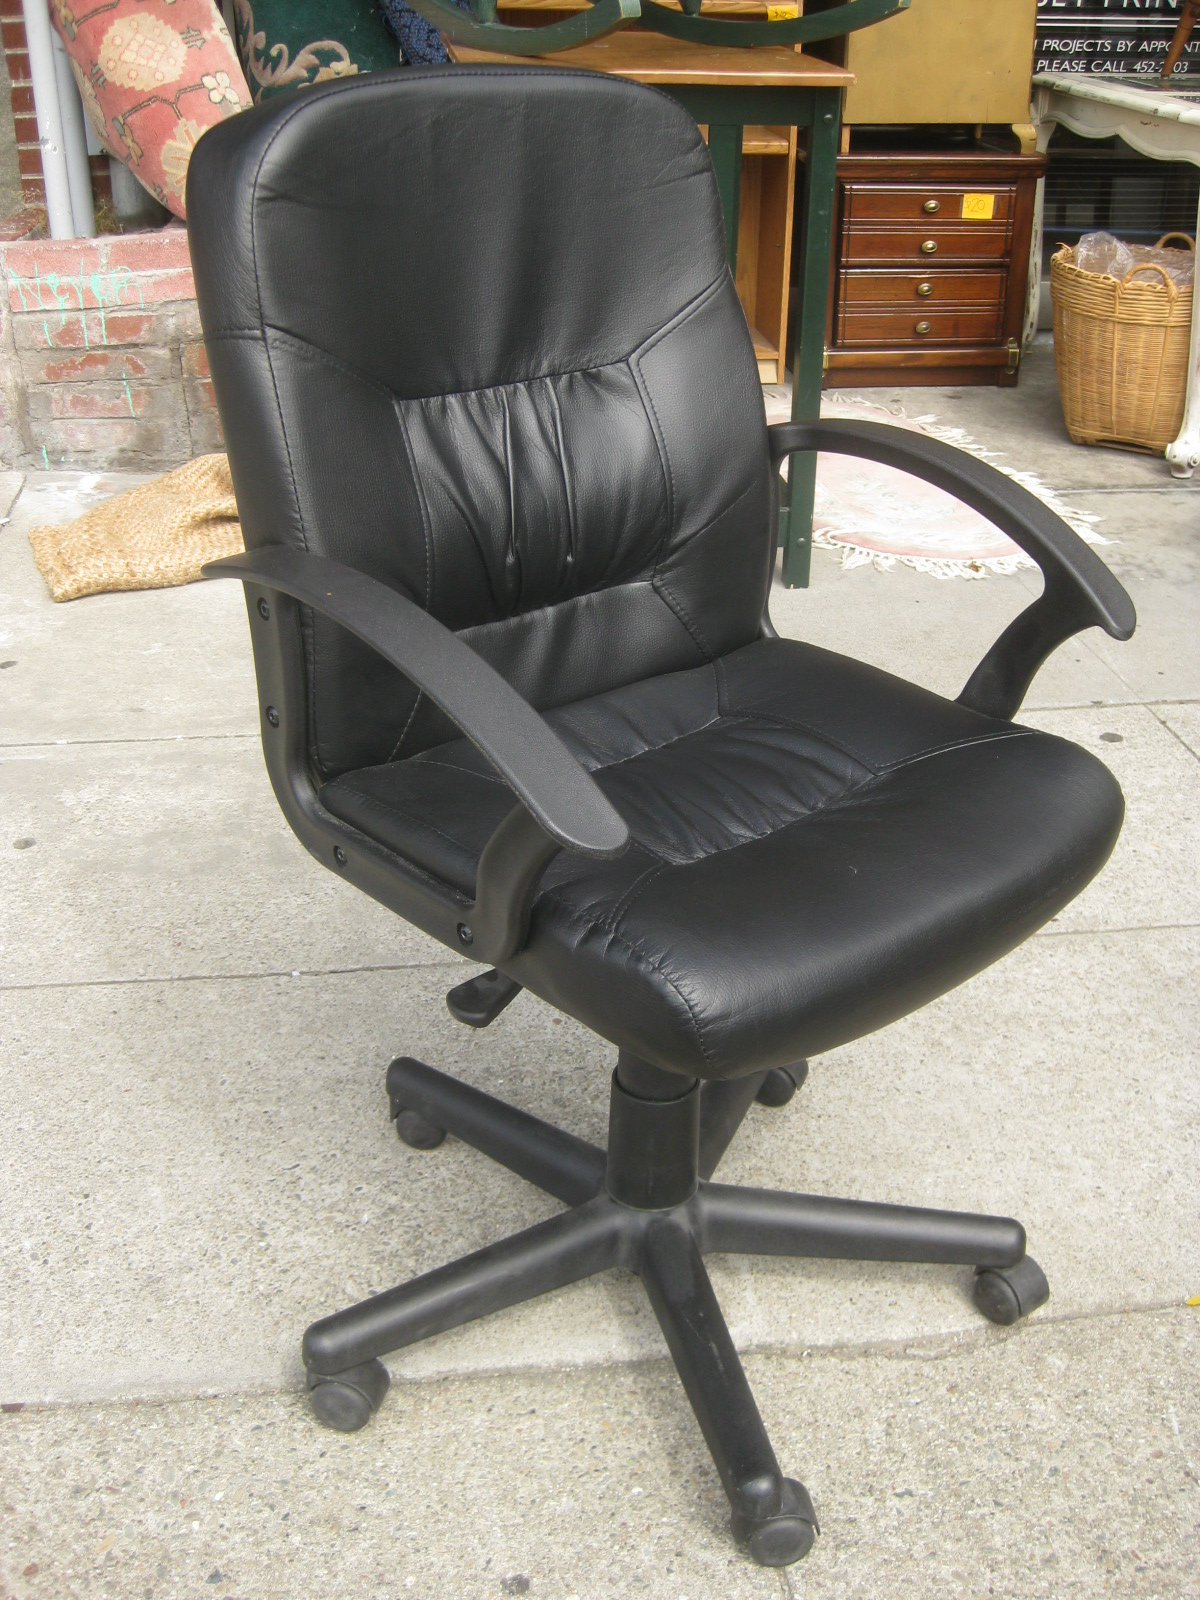 Comfy Office Chair Uhuru Furniture And Collectibles Sold Comfy Office Chair